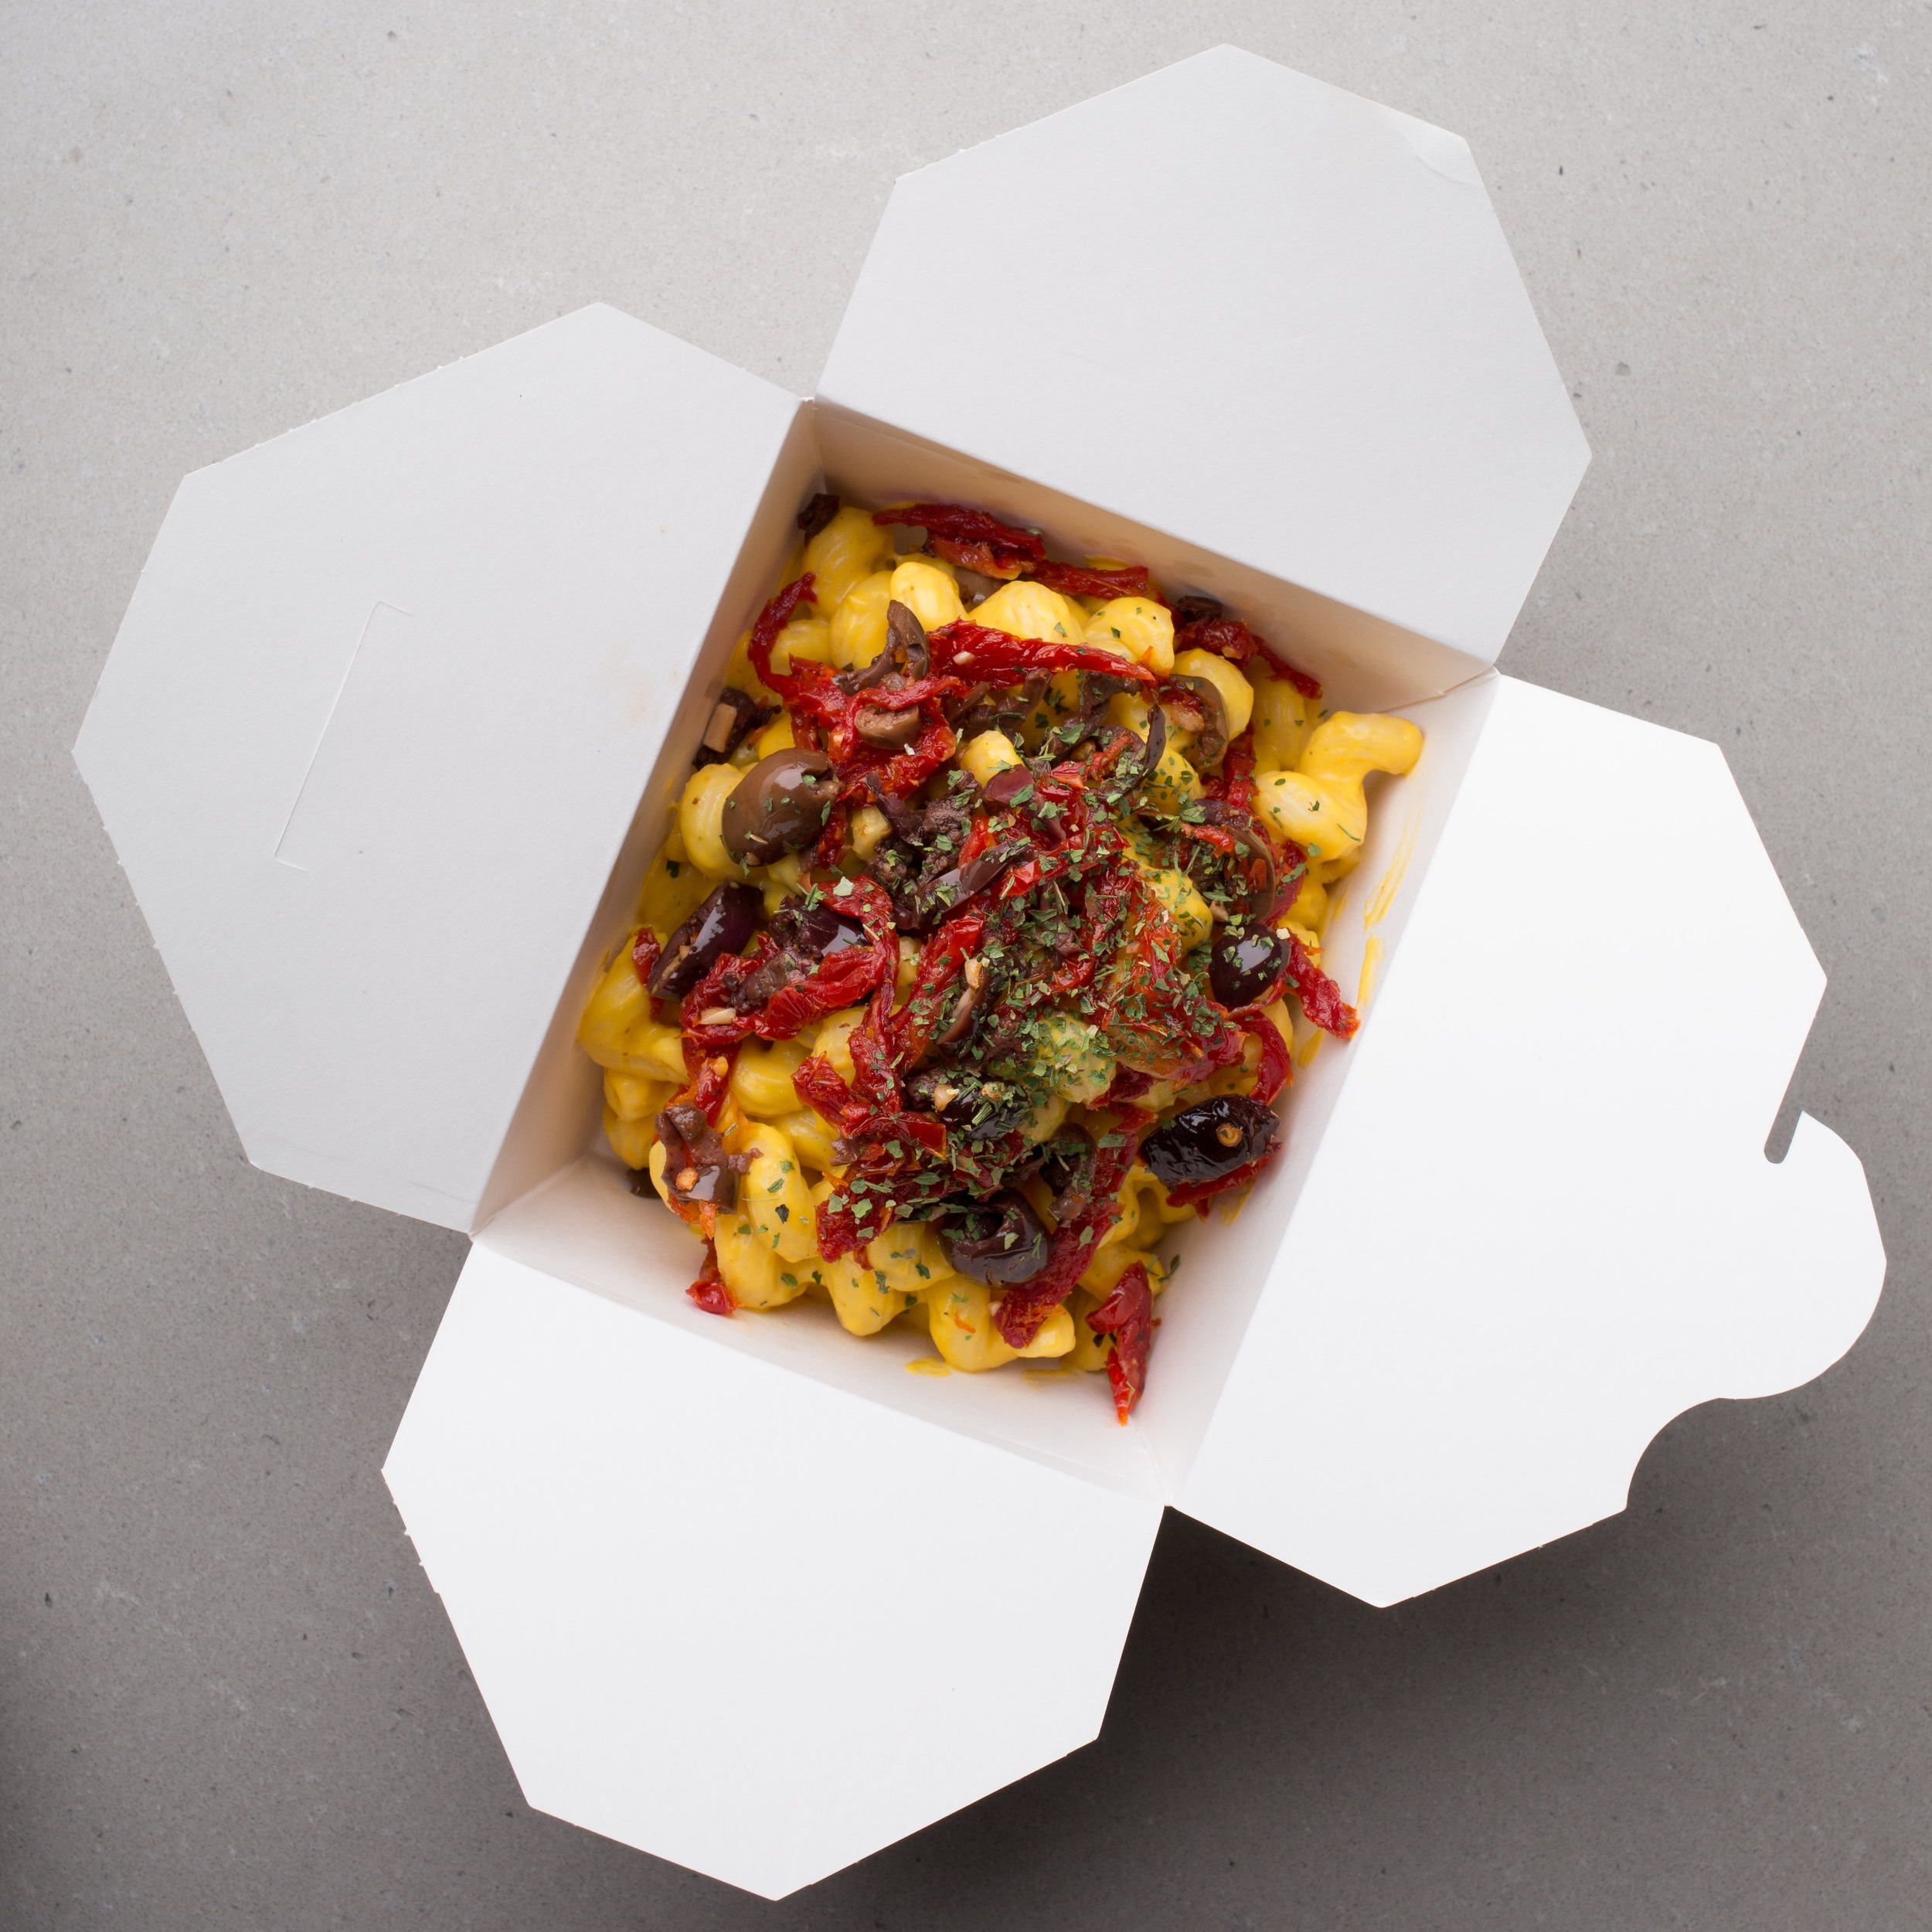 Vegan Mac and Cheese, Vegan meals located at 424 Queen St W, Toronto Ont